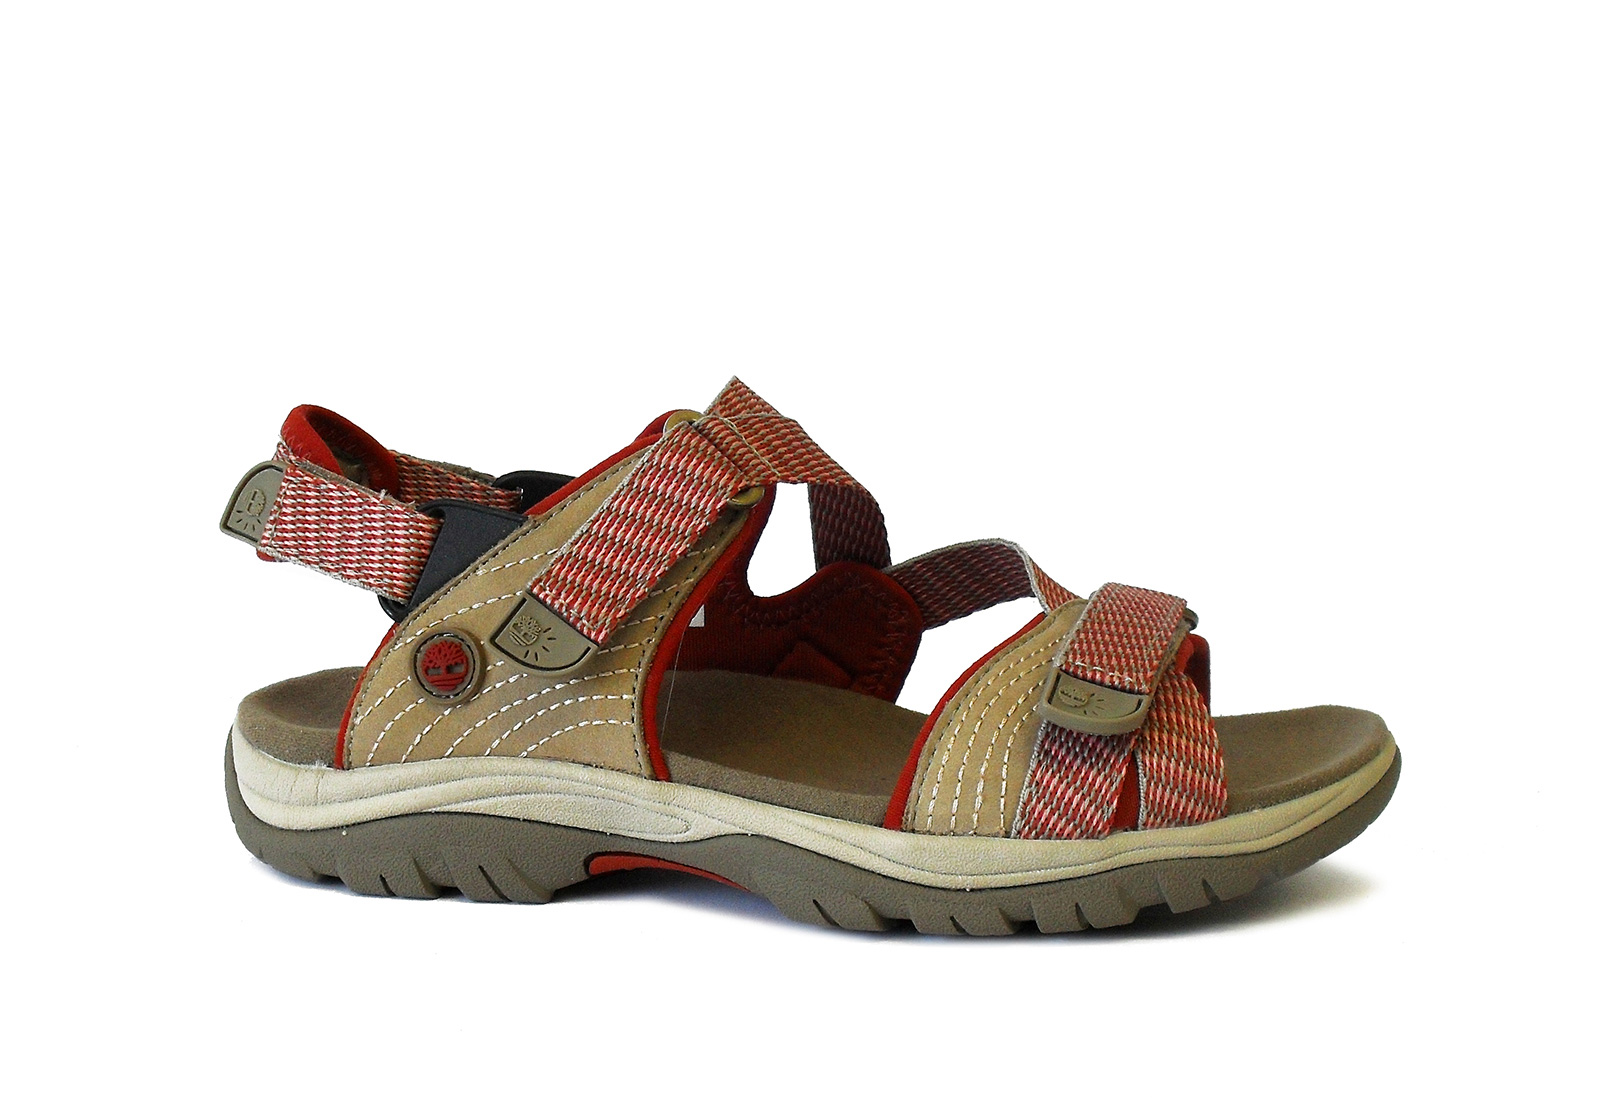 409b45cafccd54 Timberland Sandals - Jordan - 8034R-red - Online shop for sneakers ...